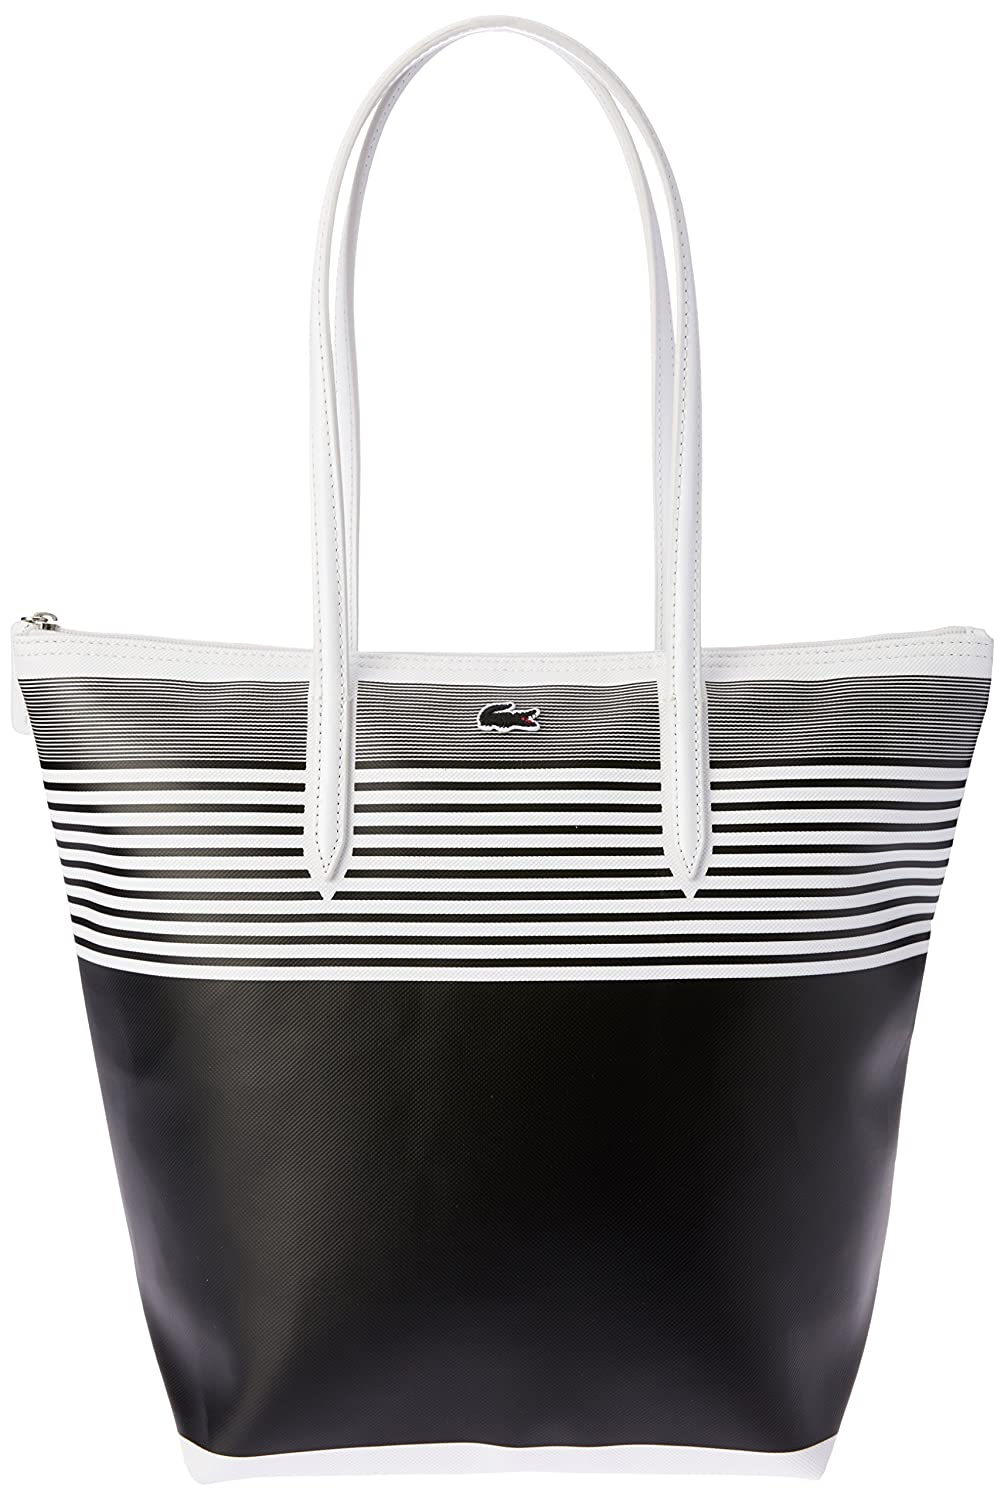 fe8f37223ef Lacoste Women's Stripe Animation Vert Tote, White Black Stripe, One Size  (Standard): Amazon.com.au: Fashion